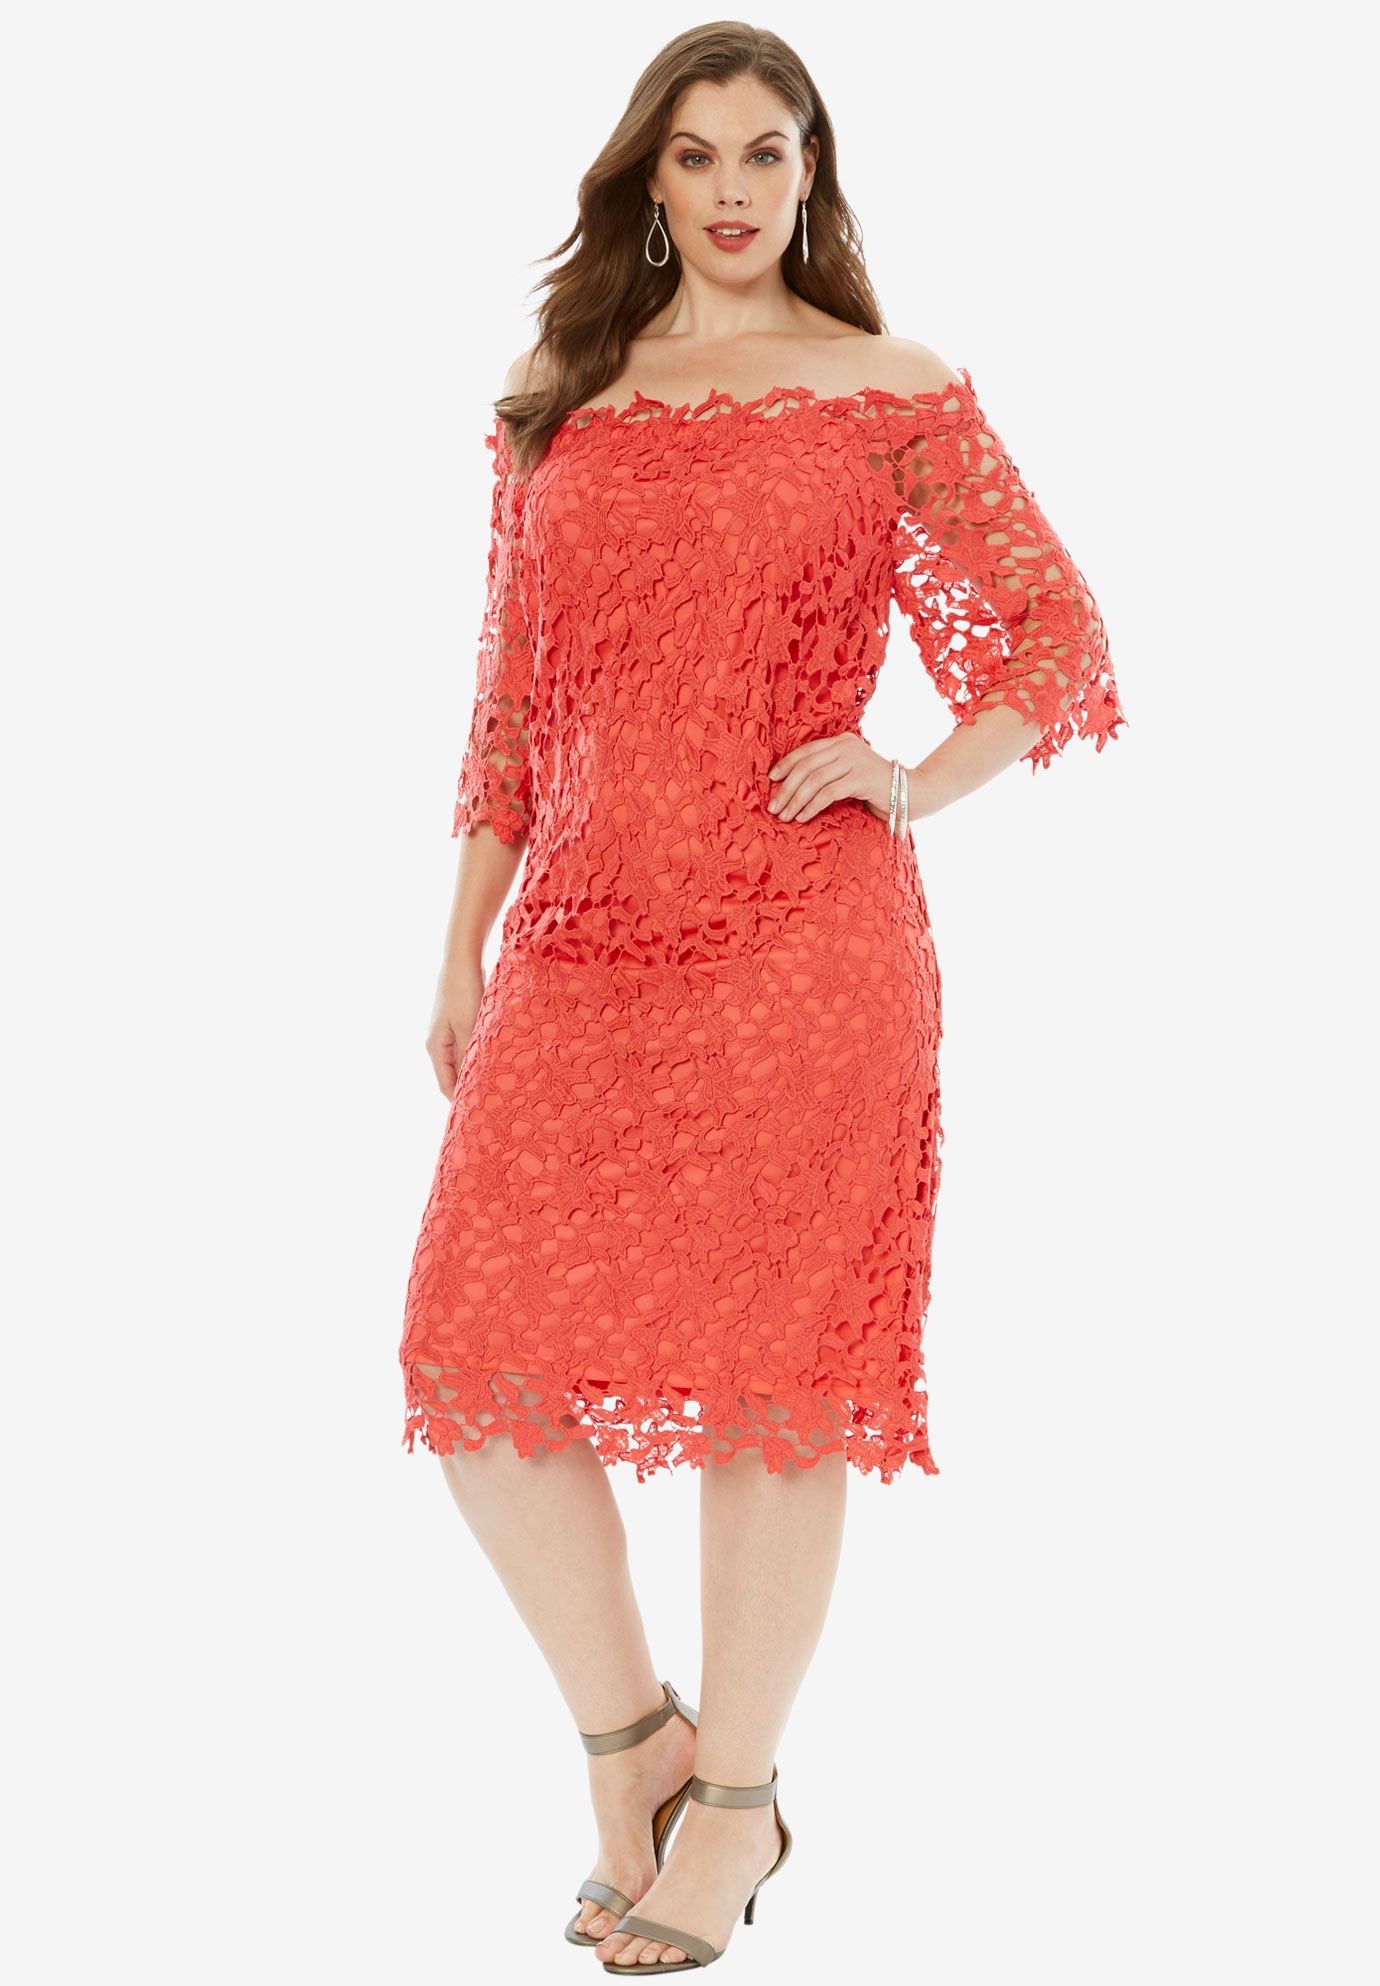 Off -The-Shoulder Lace Dress | Plus Size Cocktail Dresses | Roaman\'s